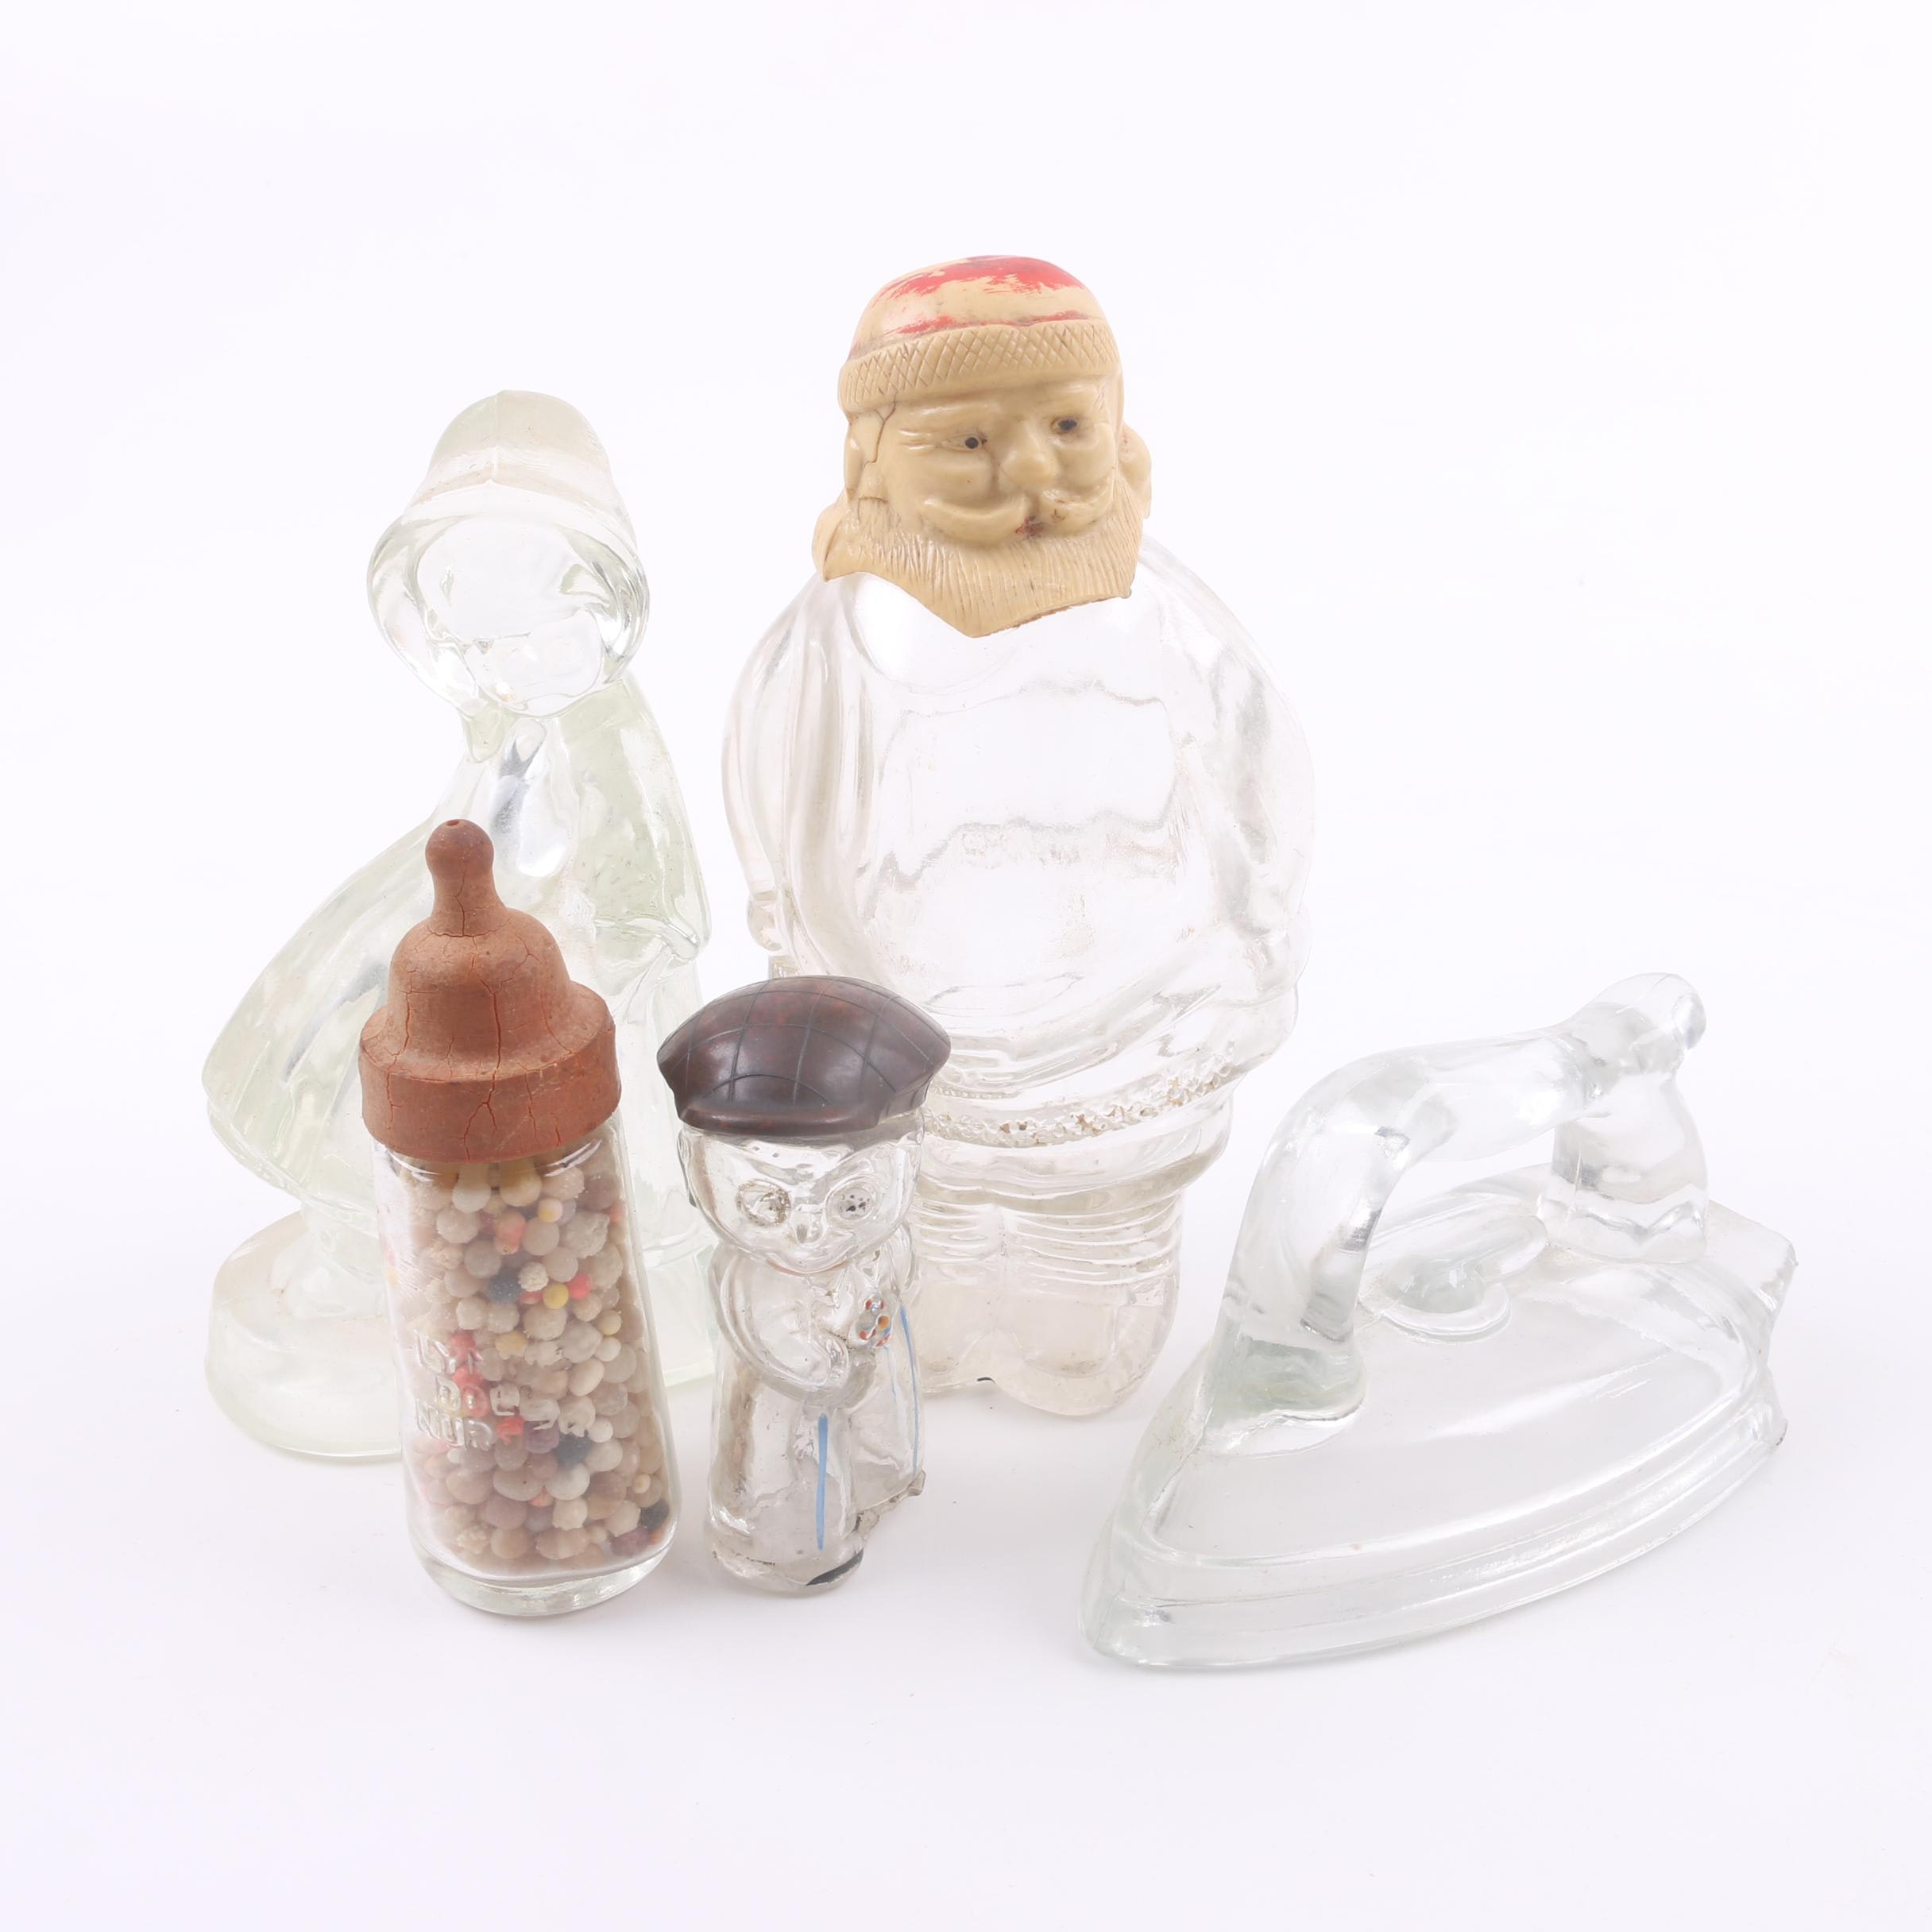 Vintage Pressed Glass Candy Canisters Including Santa Claus